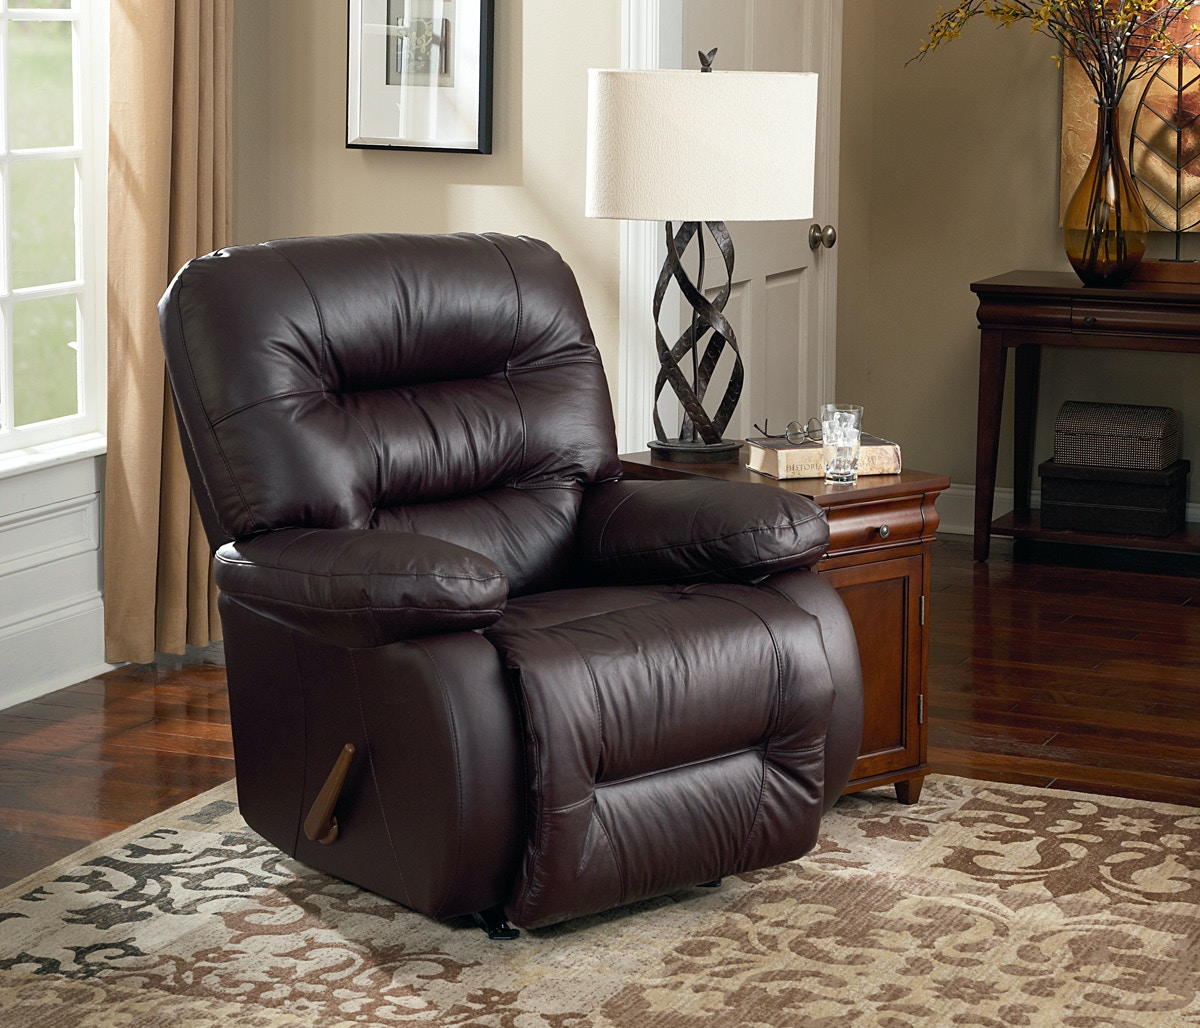 Best Home Furnishings Rocker Recliner In Burgundy Leather Seating 162471